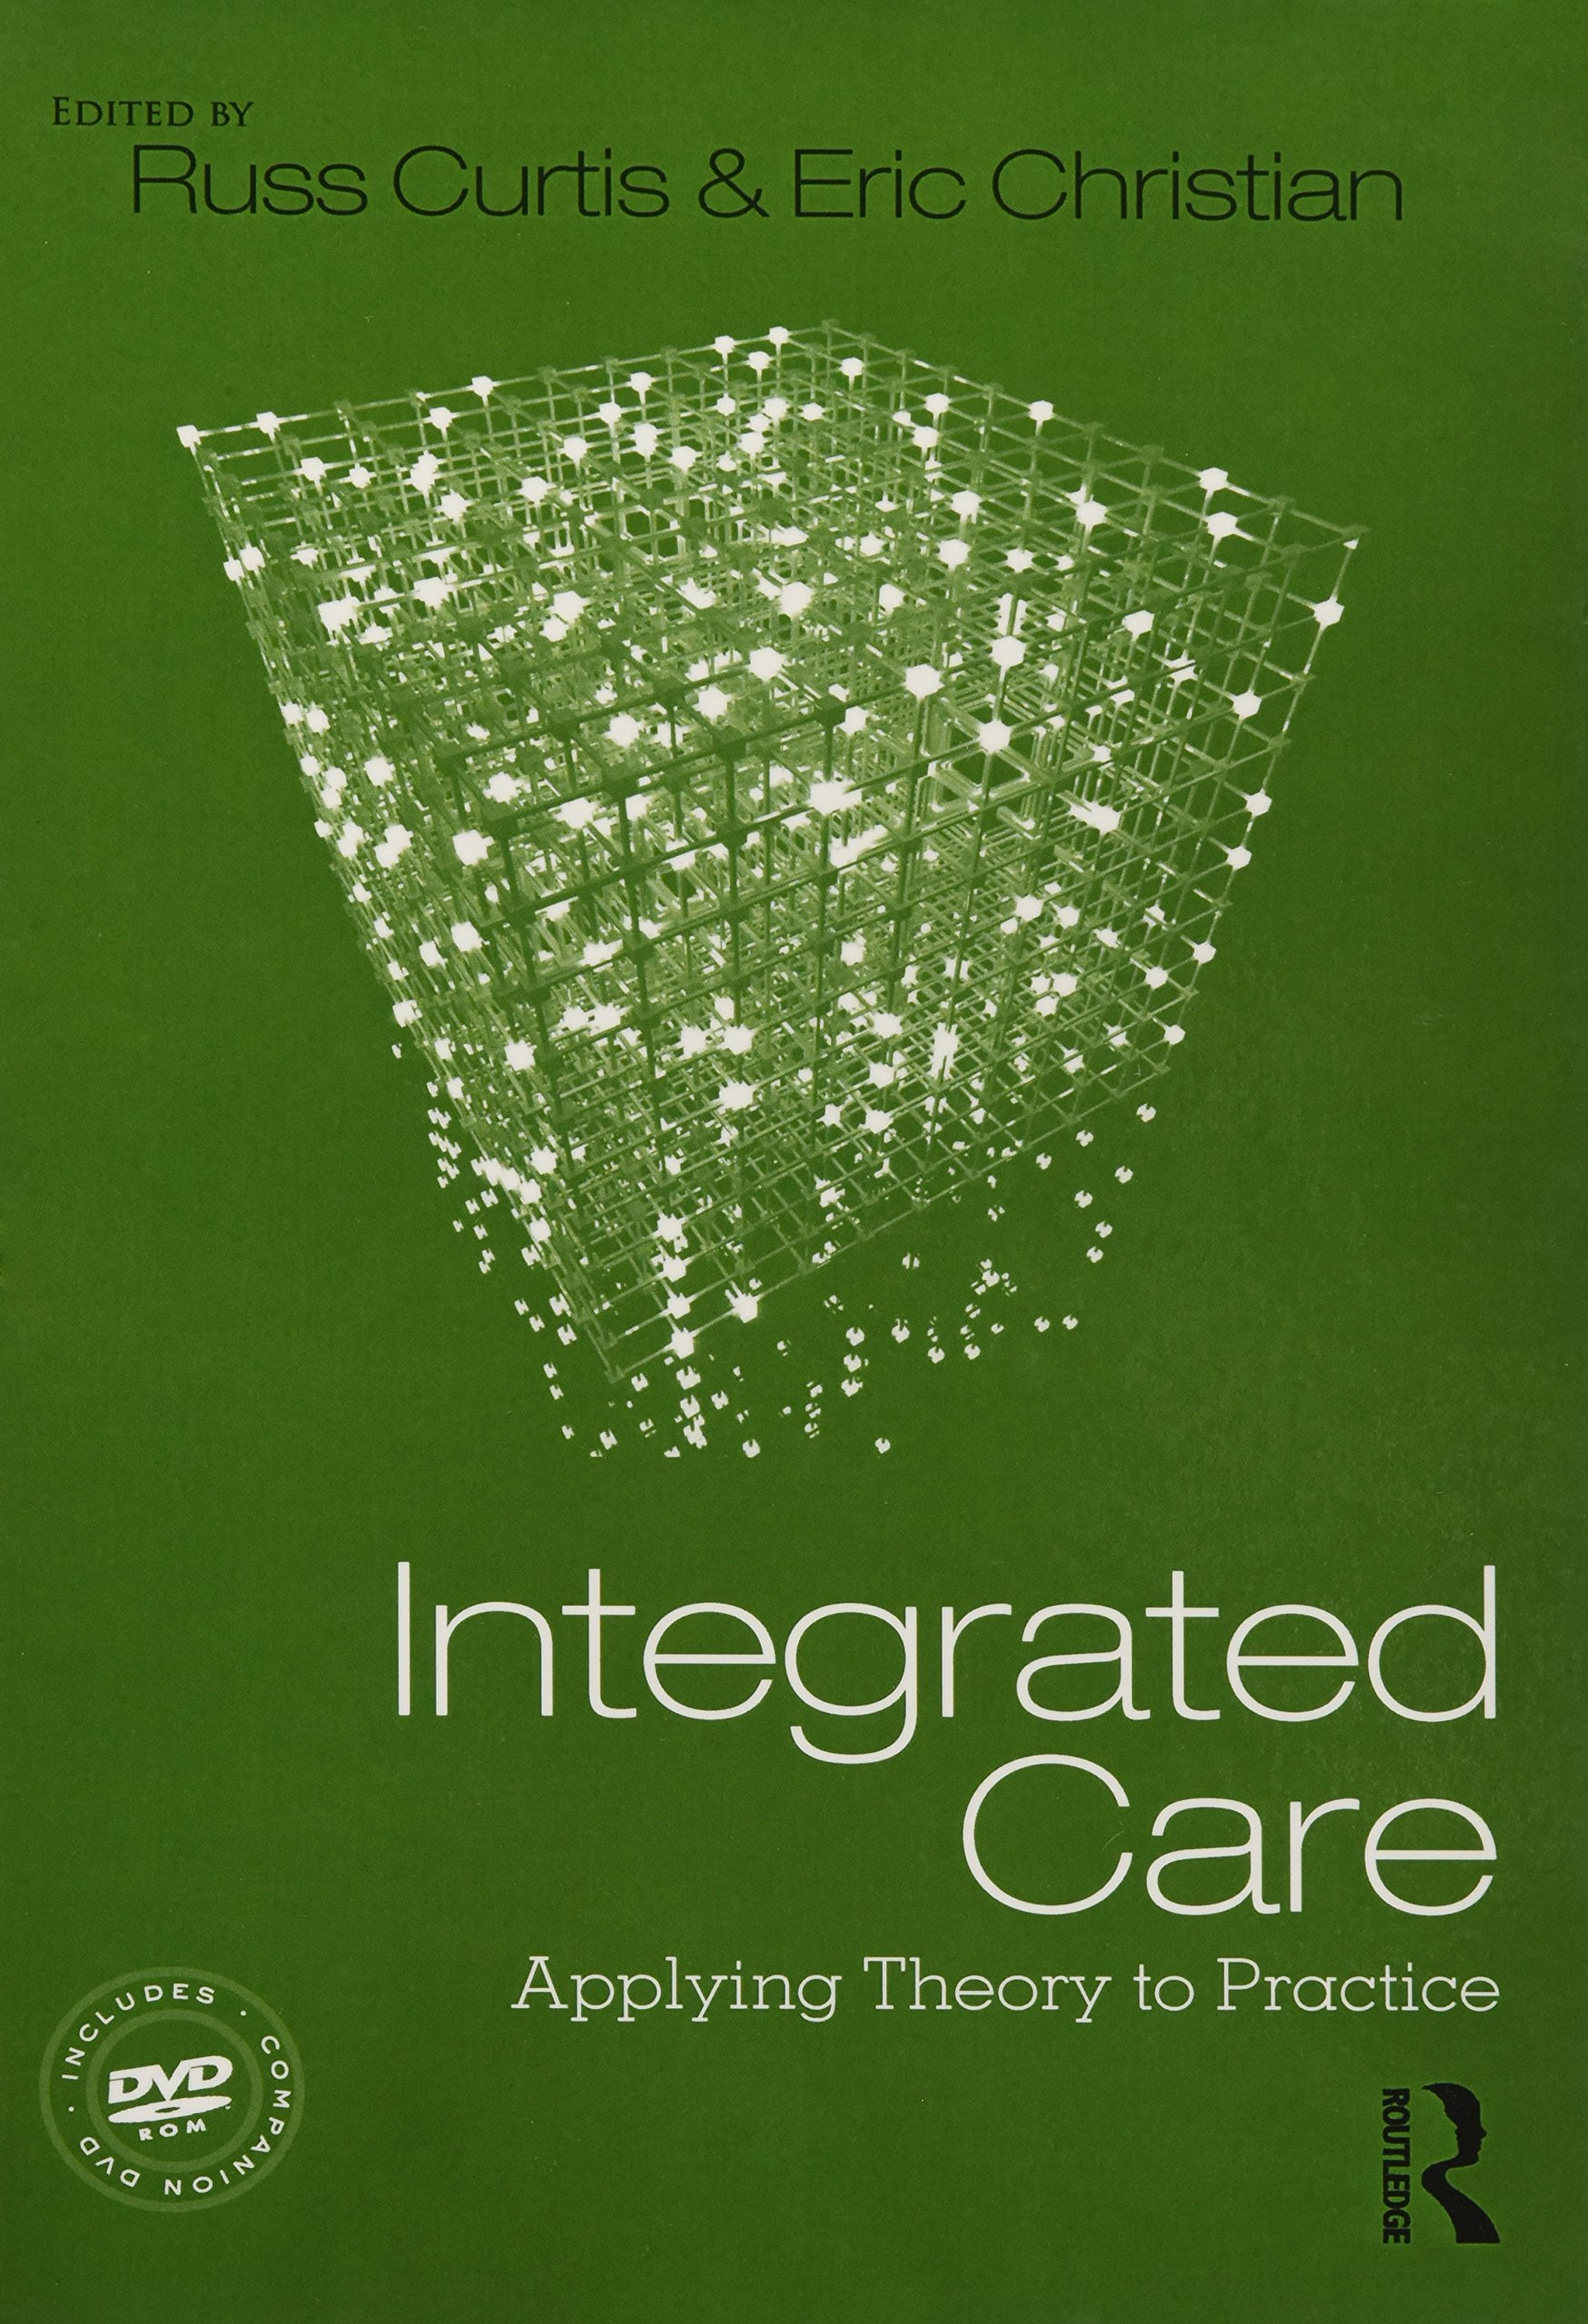 Integrated Care: Applying Theory to Practice